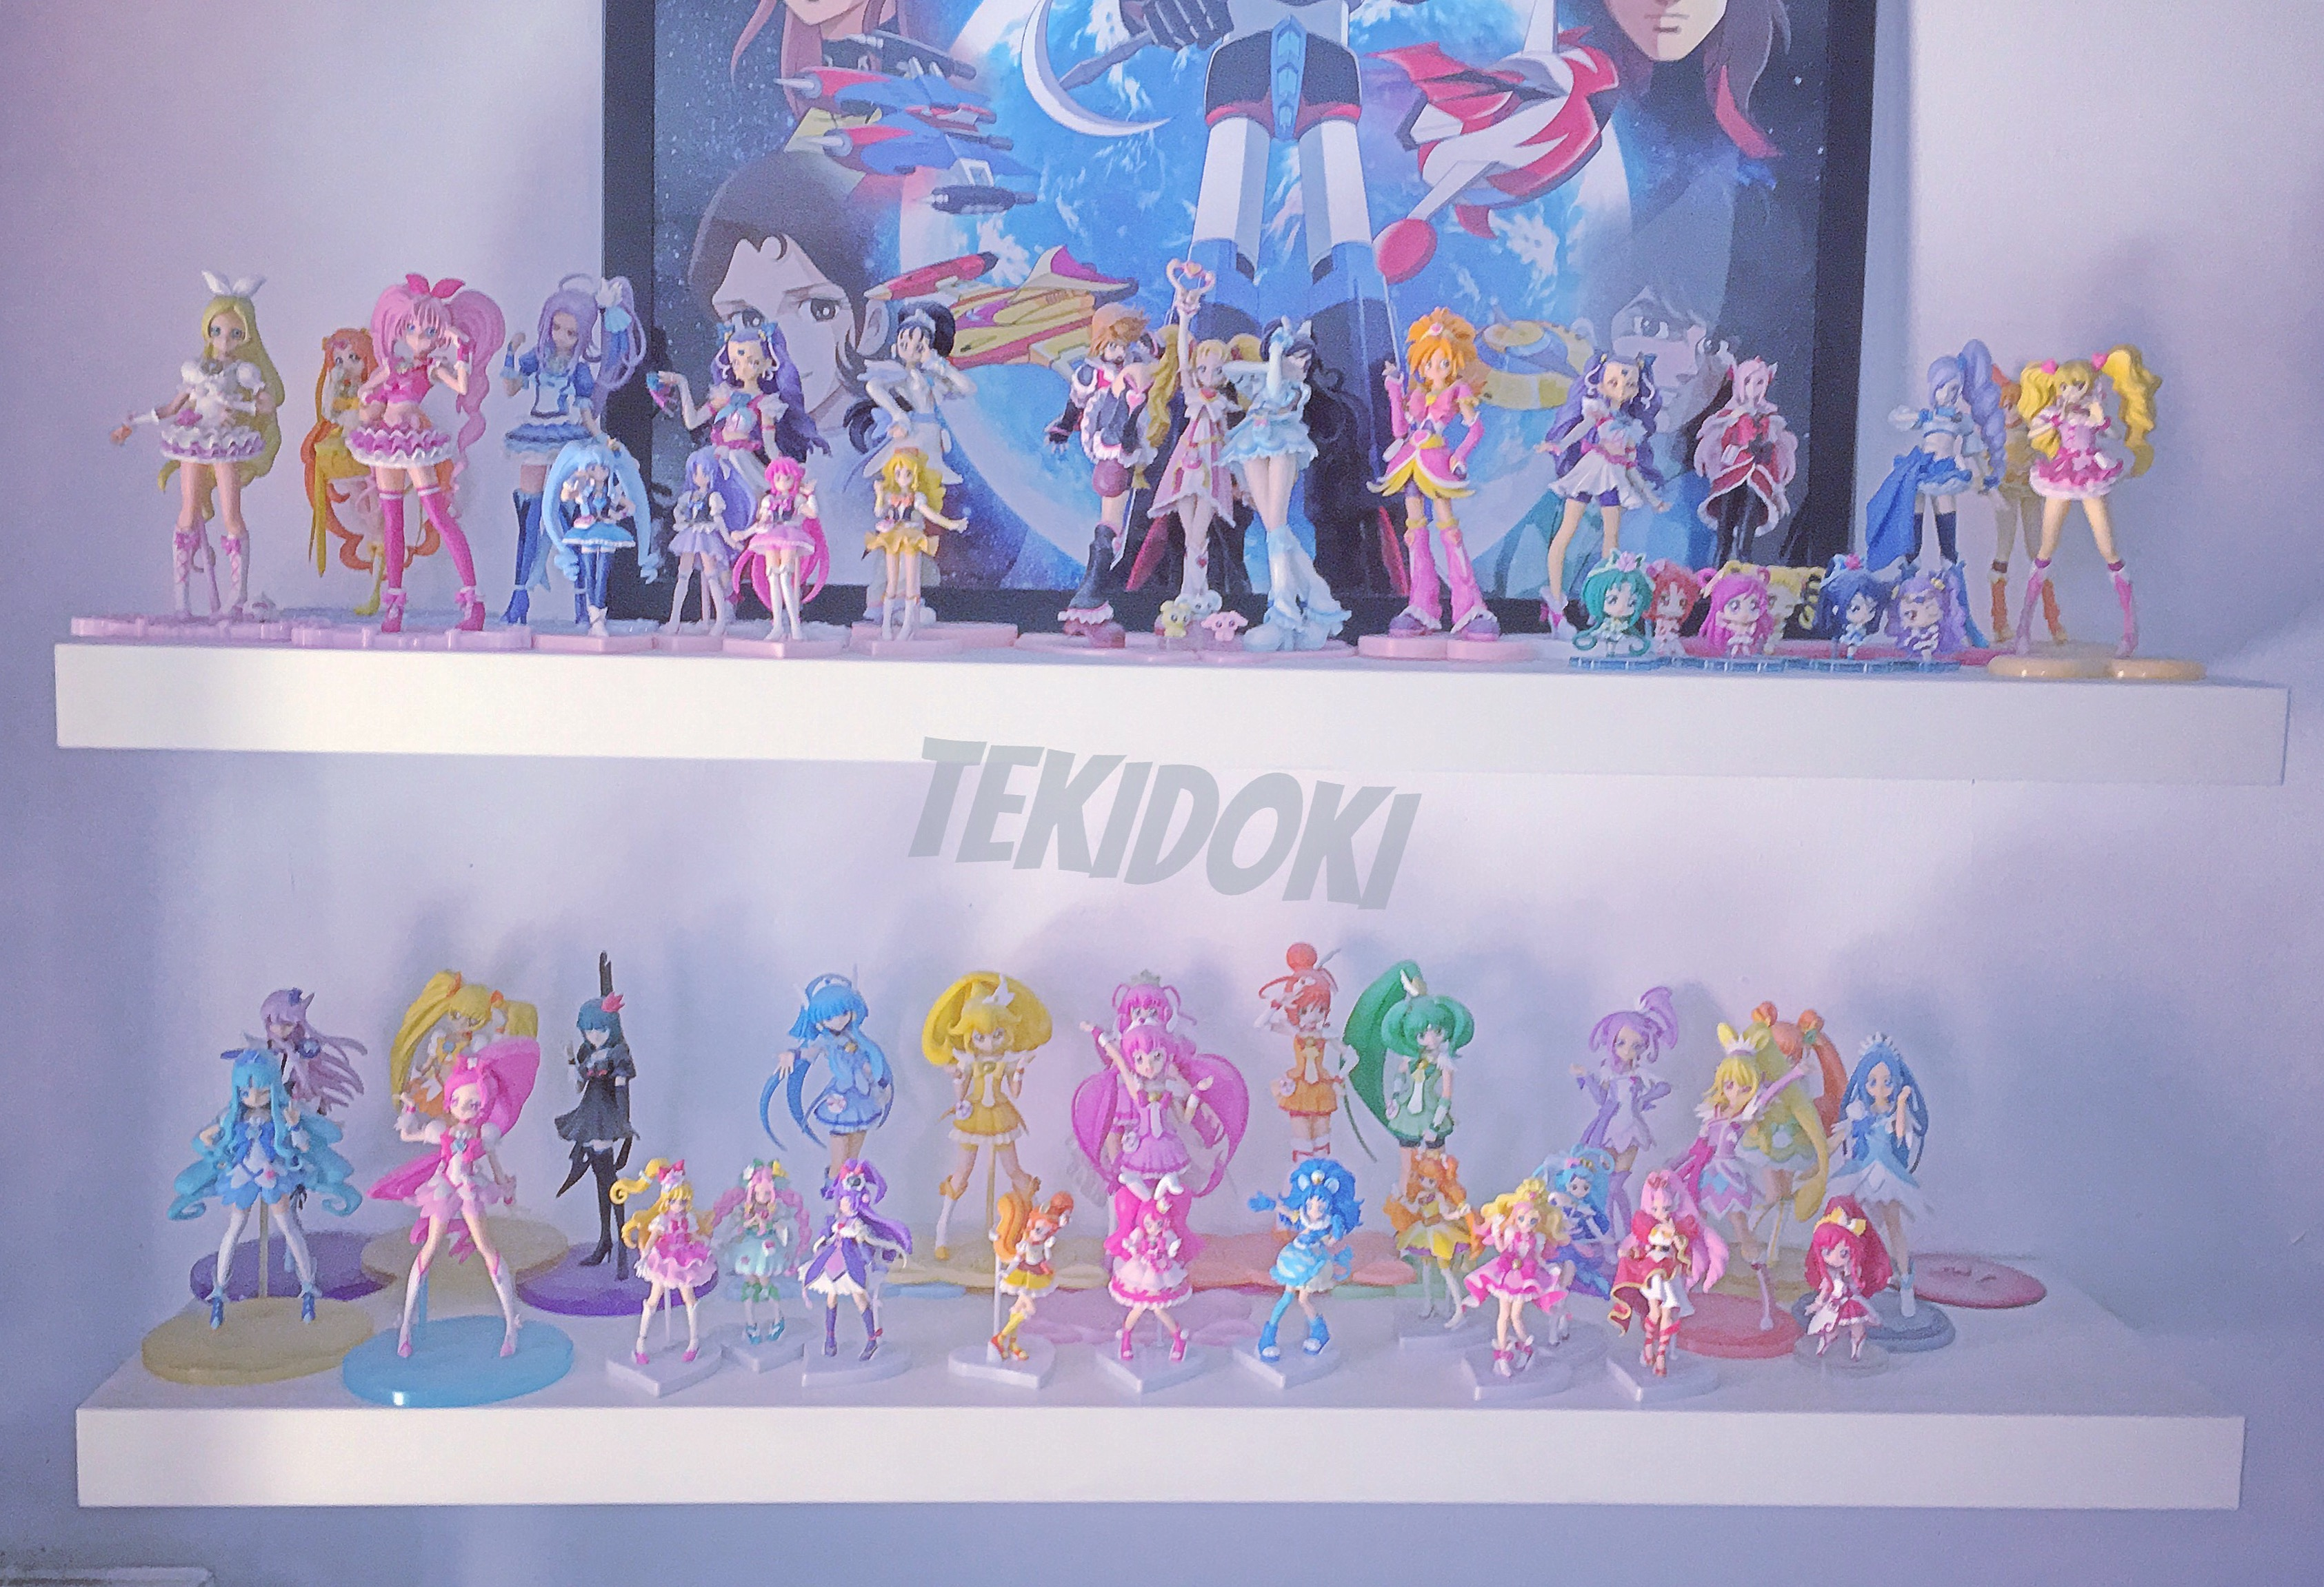 megahouse banpresto bandai excellent_model precure porun cure_white cure_black fresh_pretty_cure heartcatch_precure! cure_sunshine cure_blossom cure_marine cure_moonlight toei_animation dark_pretty_cure futari_wa_pretty_cure_max_heart cure_peach milky_rose cure_berry cure_pine suite_precure♪ cure_rhythm cure_melody futari_wa_pretty_cure dx_figure futari_wa_pretty_cure_splash_star cure_egret yes!_precure_5_gogo! cure_dream cure_rouge cure_mint cure_lemonade cure_aqua deformaster_petit_precure_all_stars_ver.cure cure_passion shiny_luminous cure_bloom cure_beat cure_muse candy_toy smile_precure! cure_march cure_peace cure_happy cure_sunny cure_beauty dxf_figure doki_doki!_precure cure_heart cutie_figure cure_diamond cure_rosetta cure_sword mepple mipple precure_dxf_figure cure_ace happinesscharge_precure! cure_lovely cure_princess cure_honey cure_fortune bandai_shokugan go!_princess_precure cure_flora cure_mermaid cure_twinkle cure_scarlet mahou_tsukai_precure! cure_magical cure_miracle mahou_tsukai_precure!_cutie_figure cure_felice pretty_cure_dx futari_wa_precure_precure_dx dx_assemblage_girls_figure cure_whip cure_custard cure_gelato kirakira_☆_precure_a_la_mode kirakira_precure_a_la_mode_cutie_figure_set